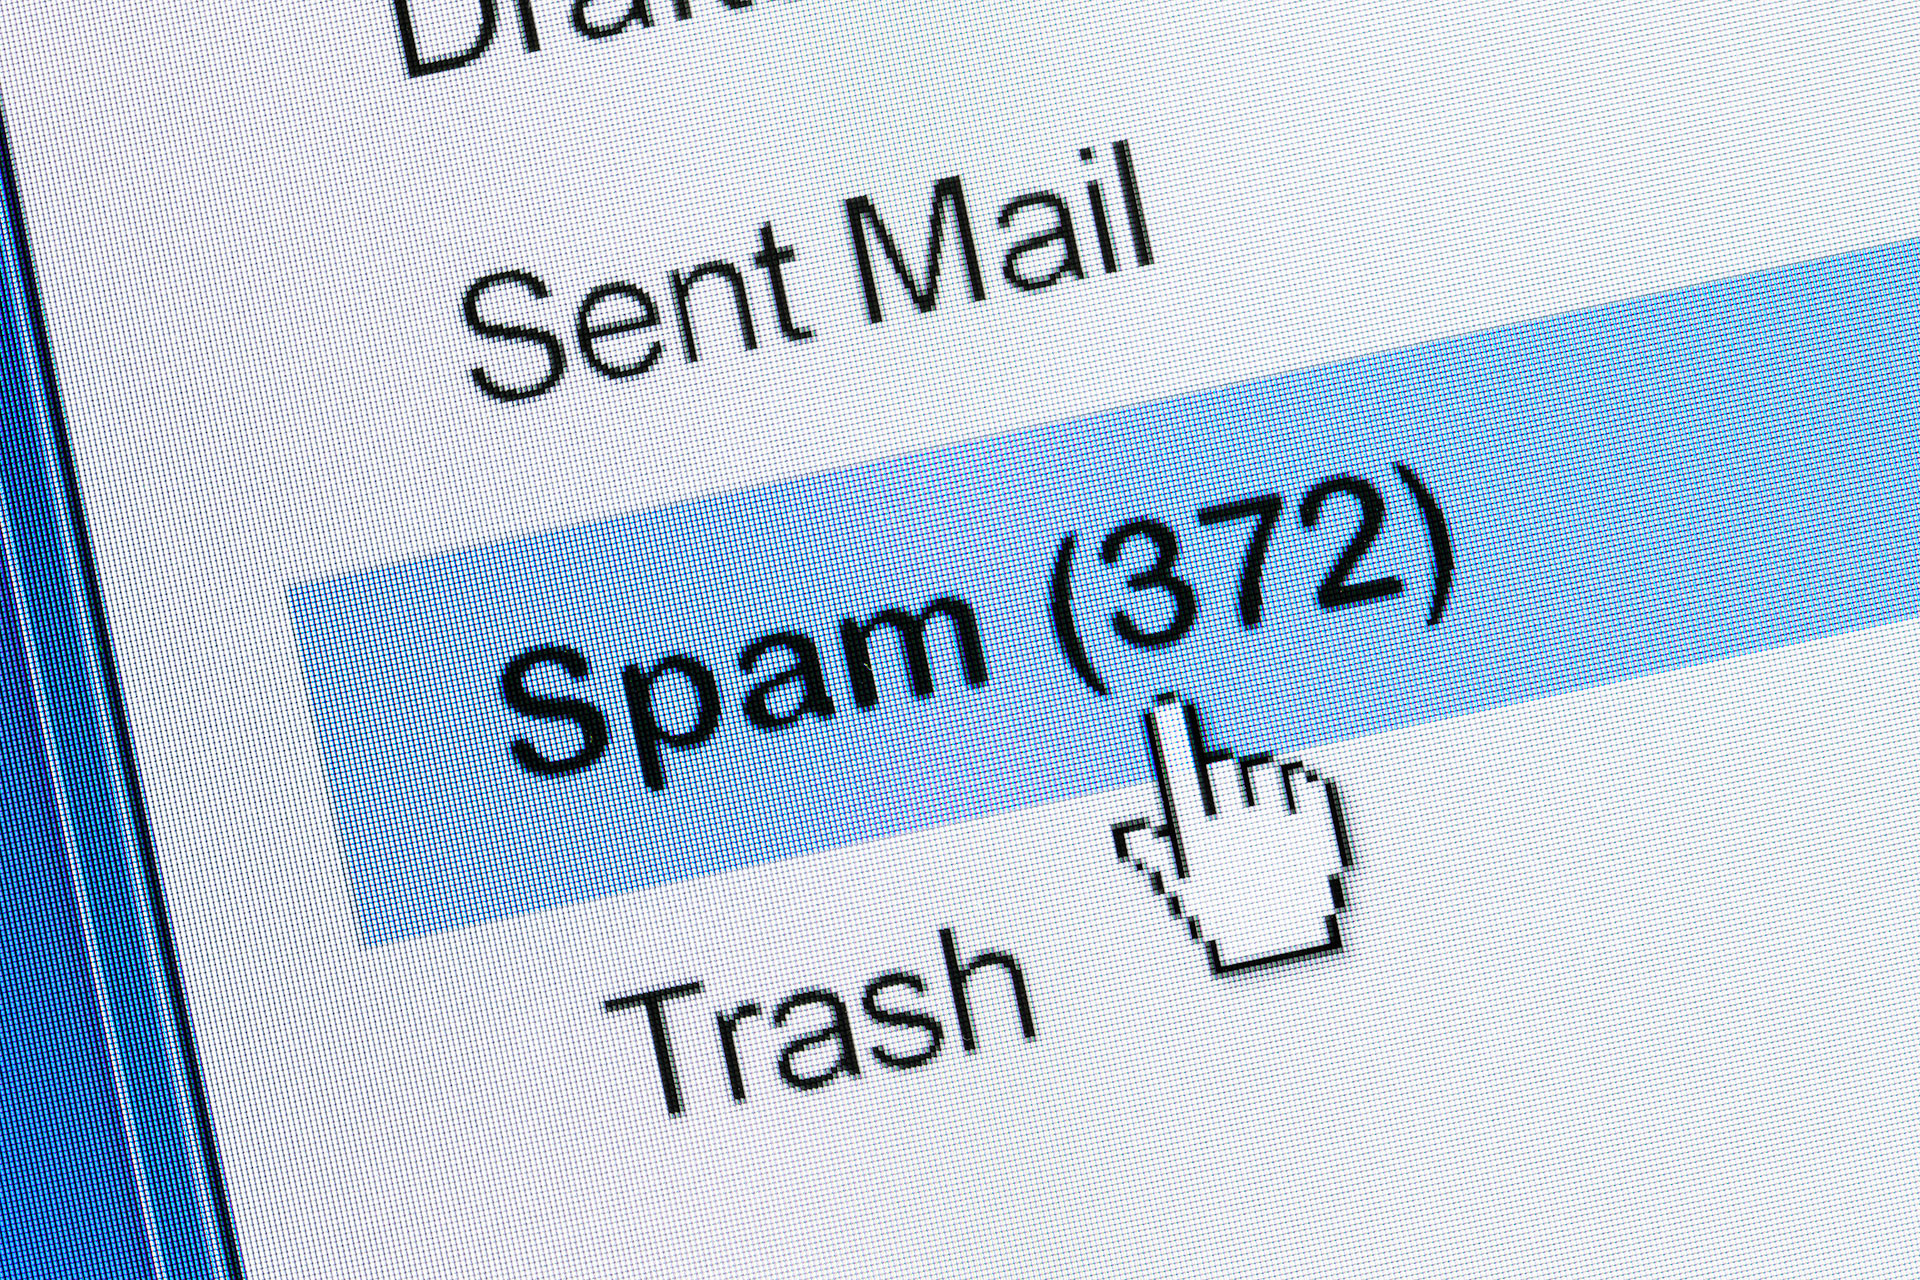 Navigating Anti-Spam Legislation While Email Marketing